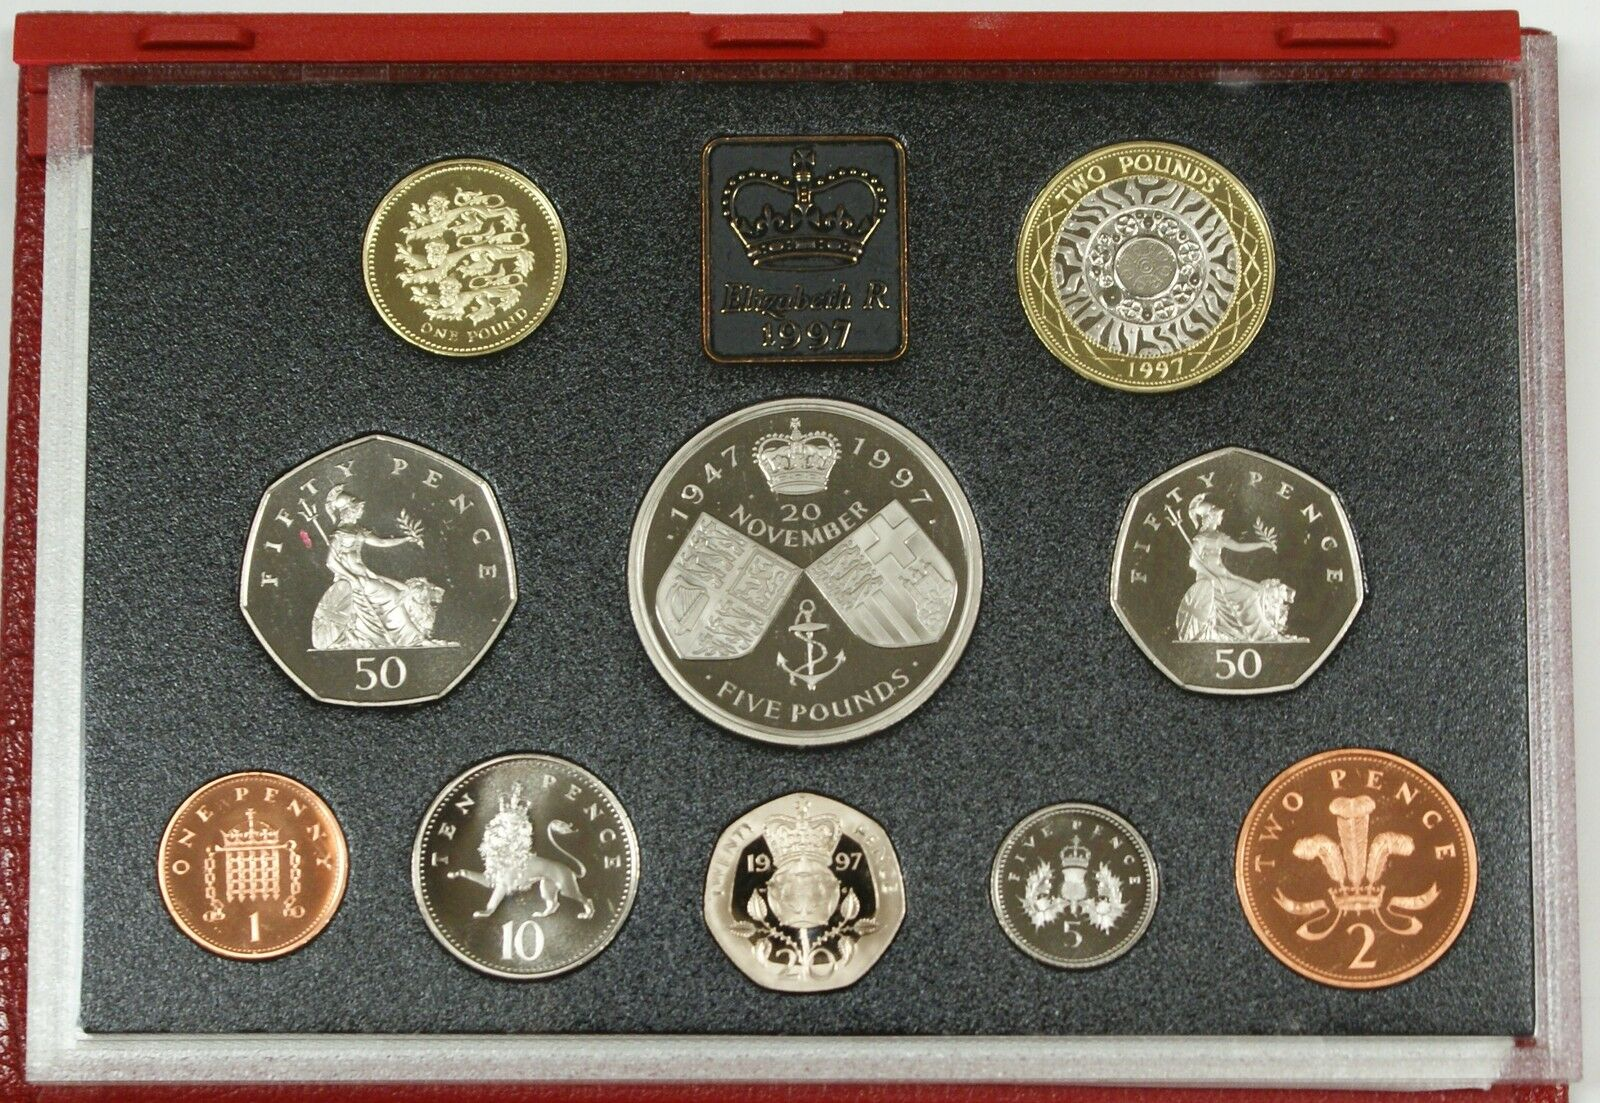 1997 United Kingdom DELUXE Proof Set, GEM Coins, 10 Coins Total, NO Box, W/ COA